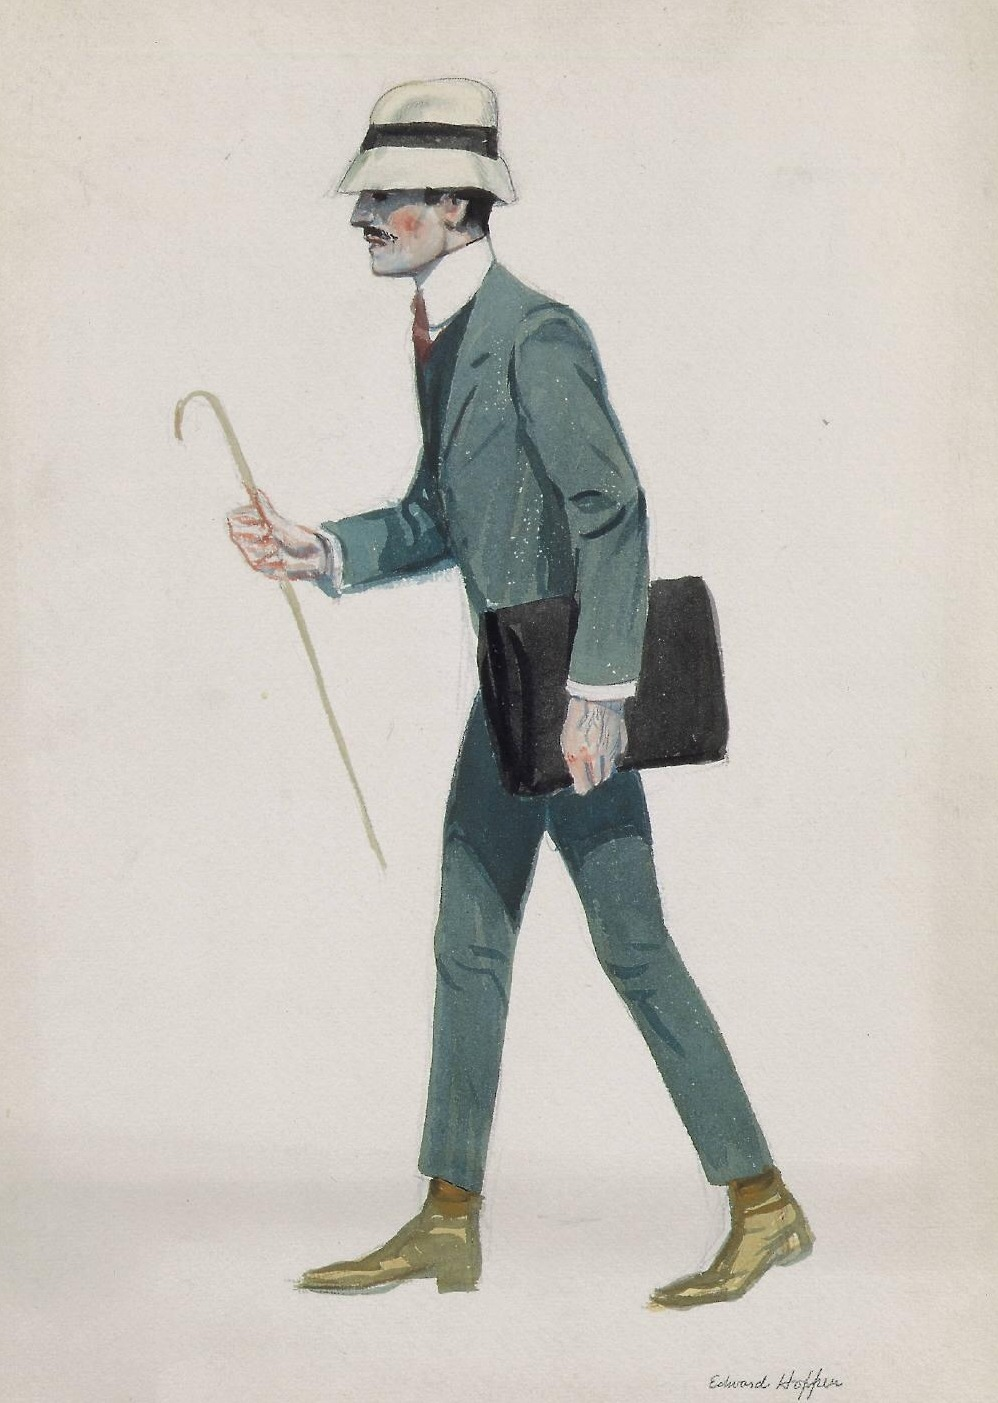 Edward Hopper: Walking Man with Cane and Briefcase, 1906-1907.